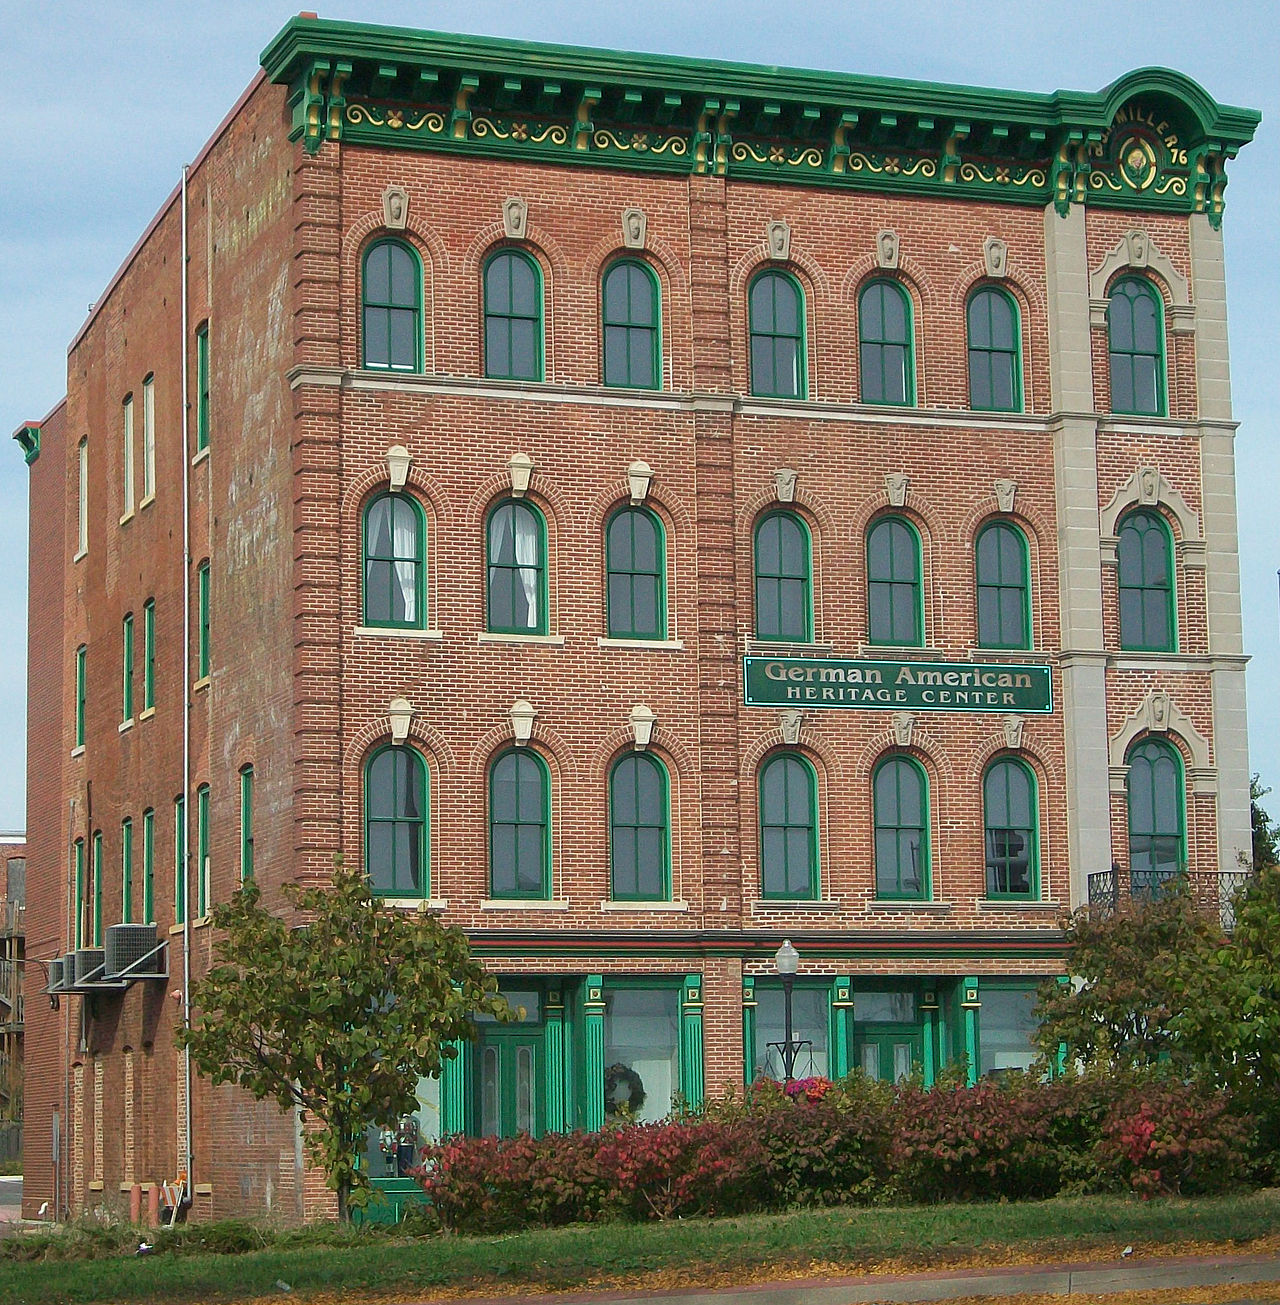 Built in 1871, the German American Heritage Center was originally a hotel for German immigrants.